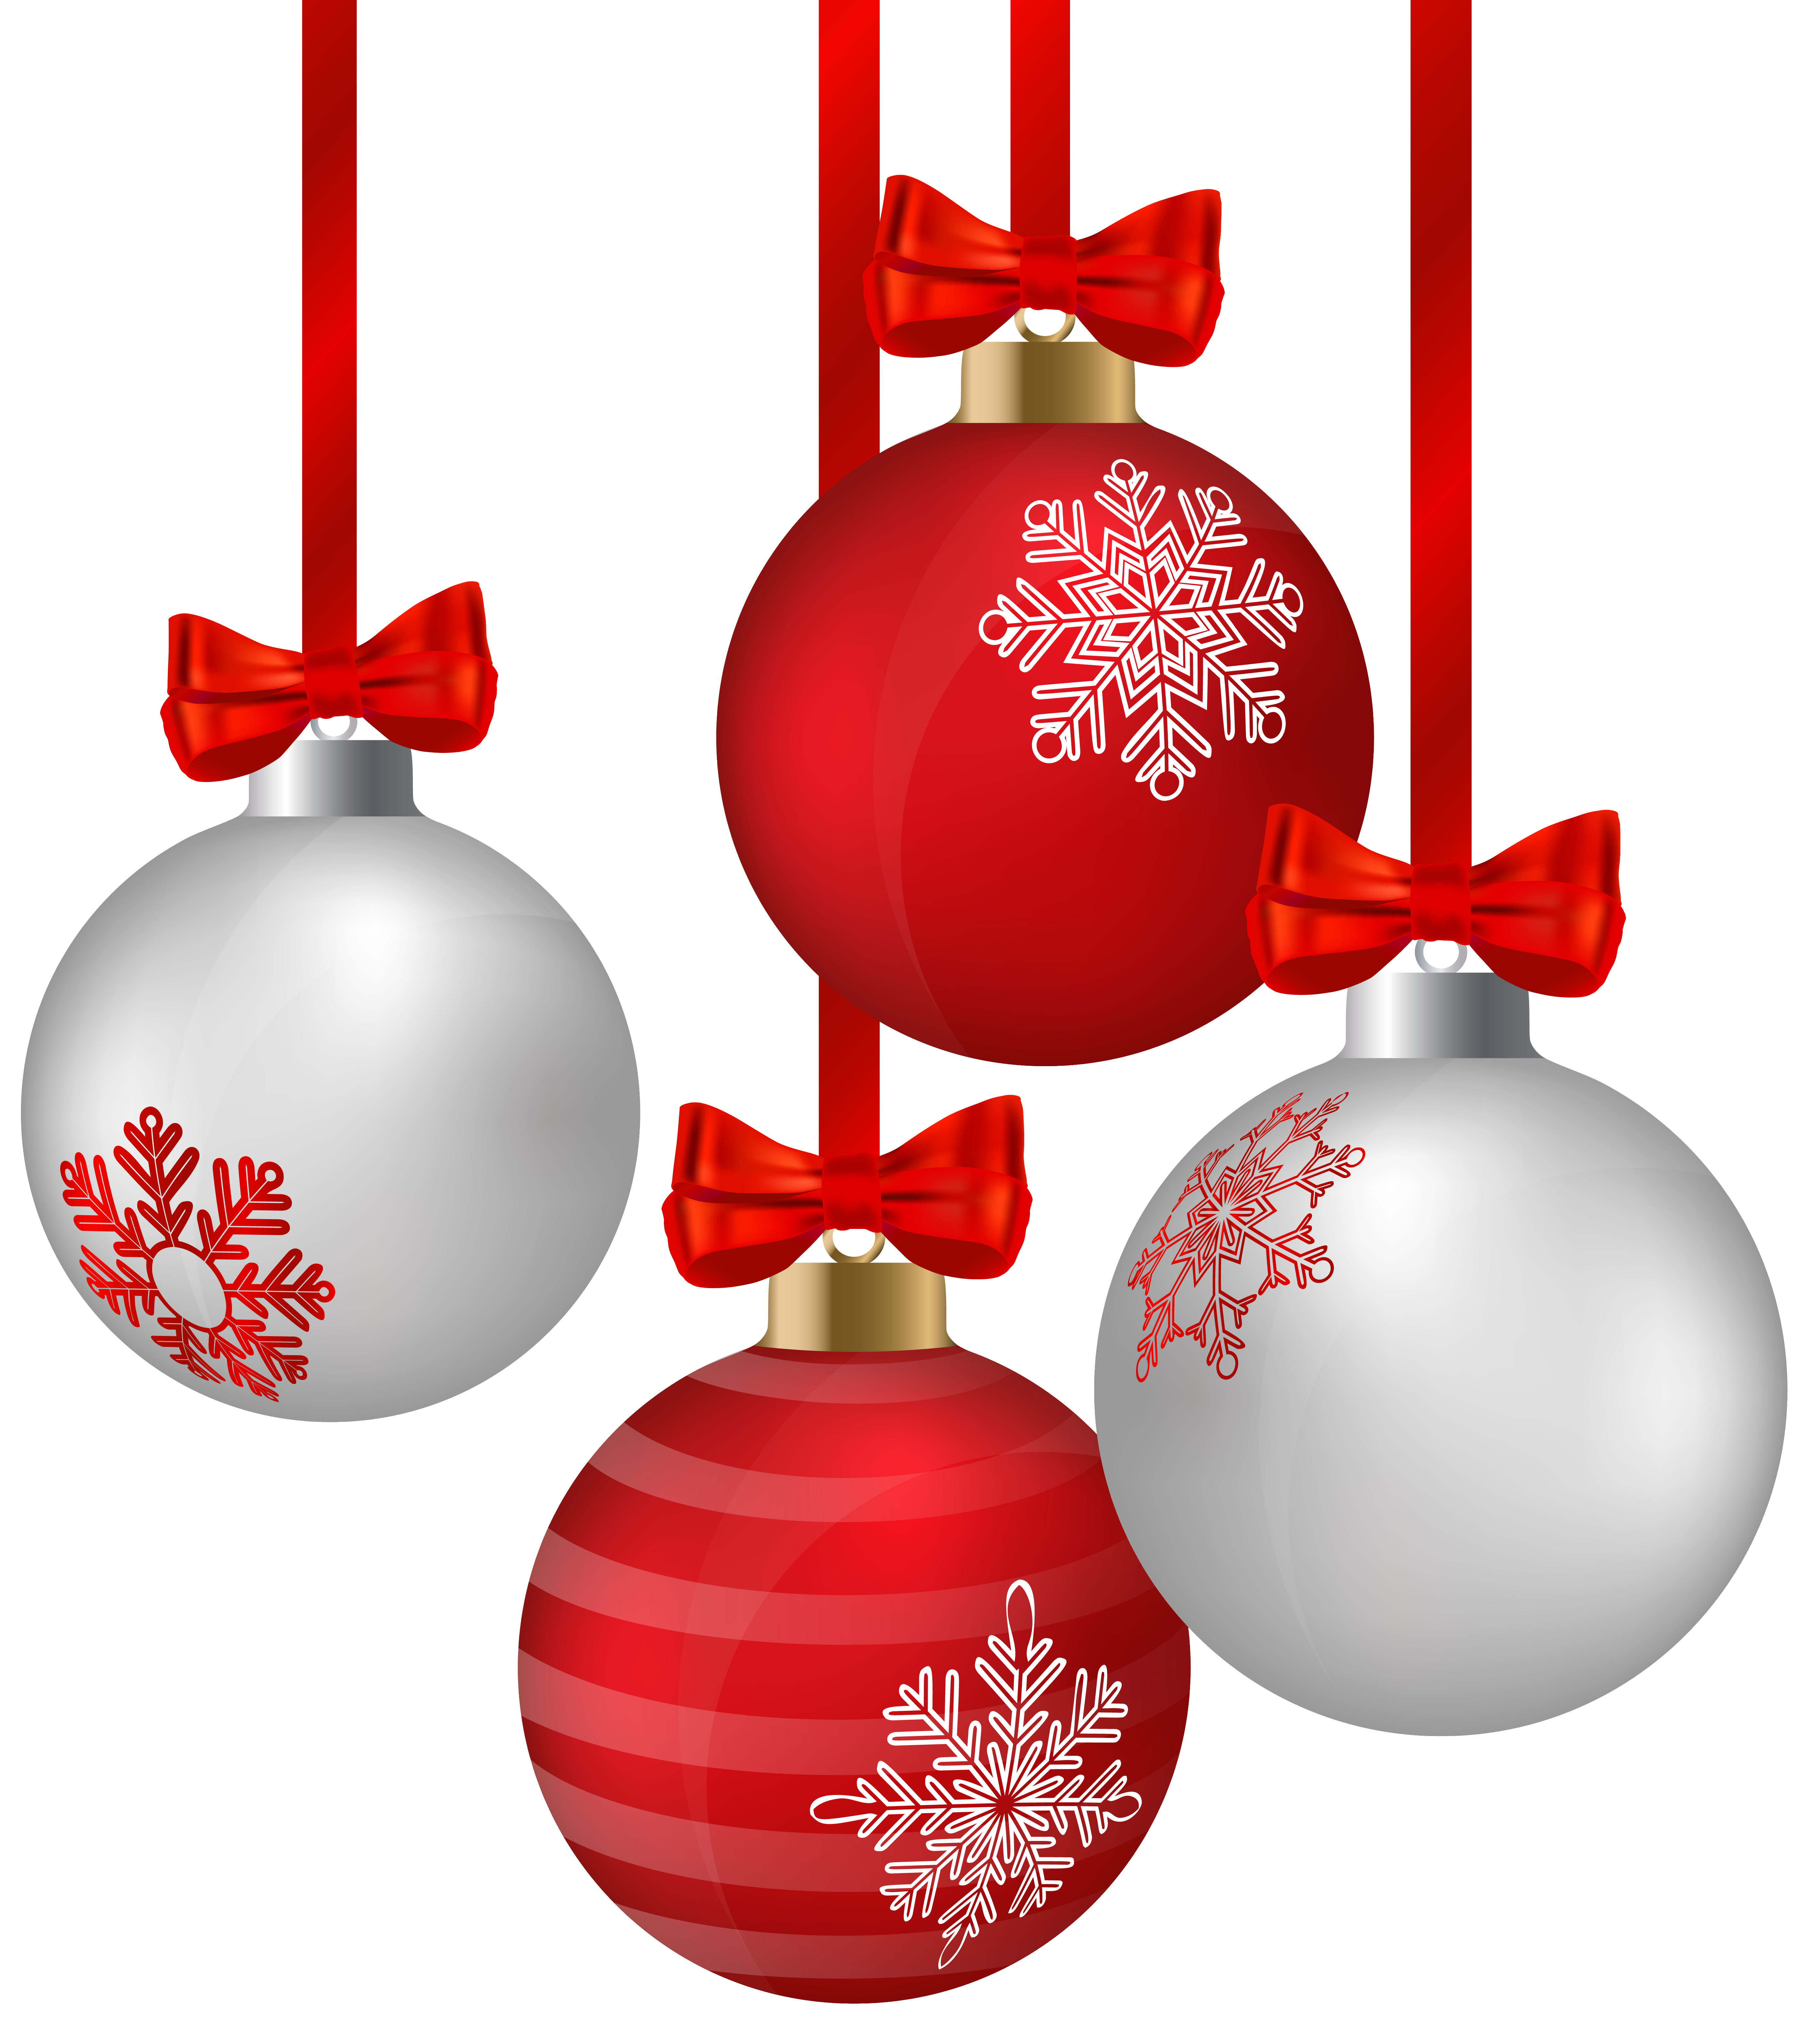 Christmas Ornaments Transparent Png Pictures Free Icons